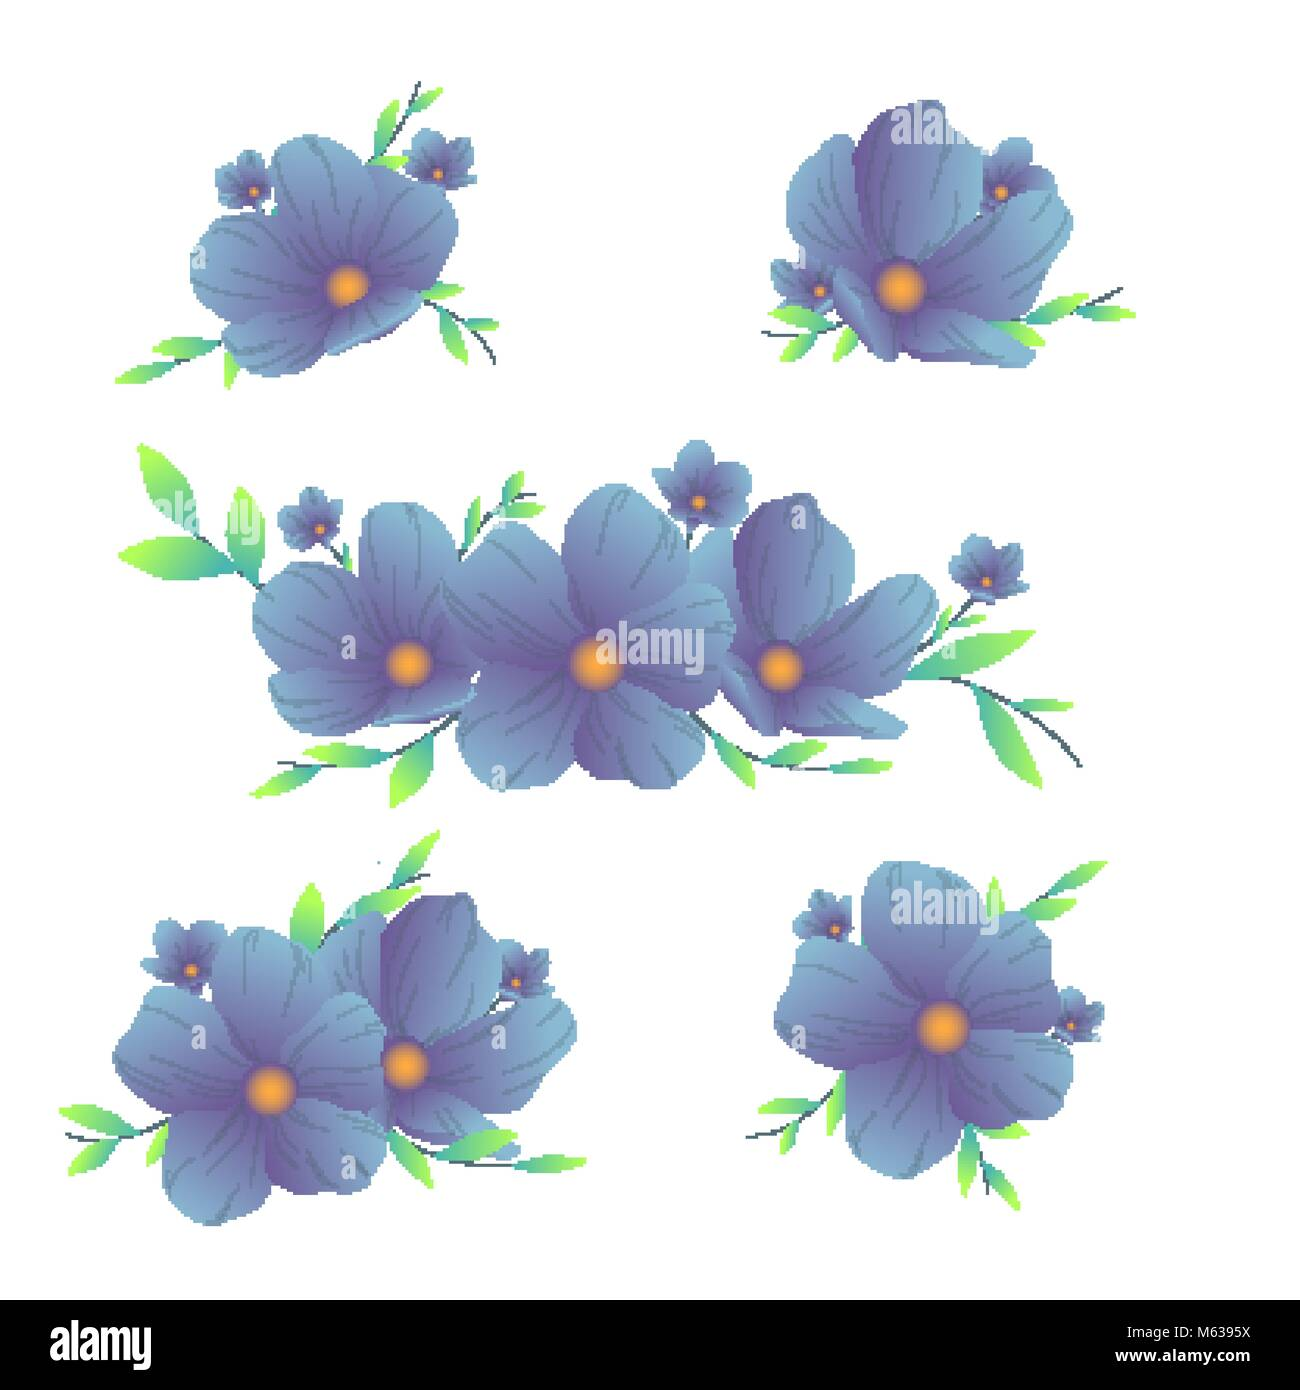 Spring flowers trendy flowers set of different design compositions spring flowers trendy flowers set of different design compositions mightylinksfo